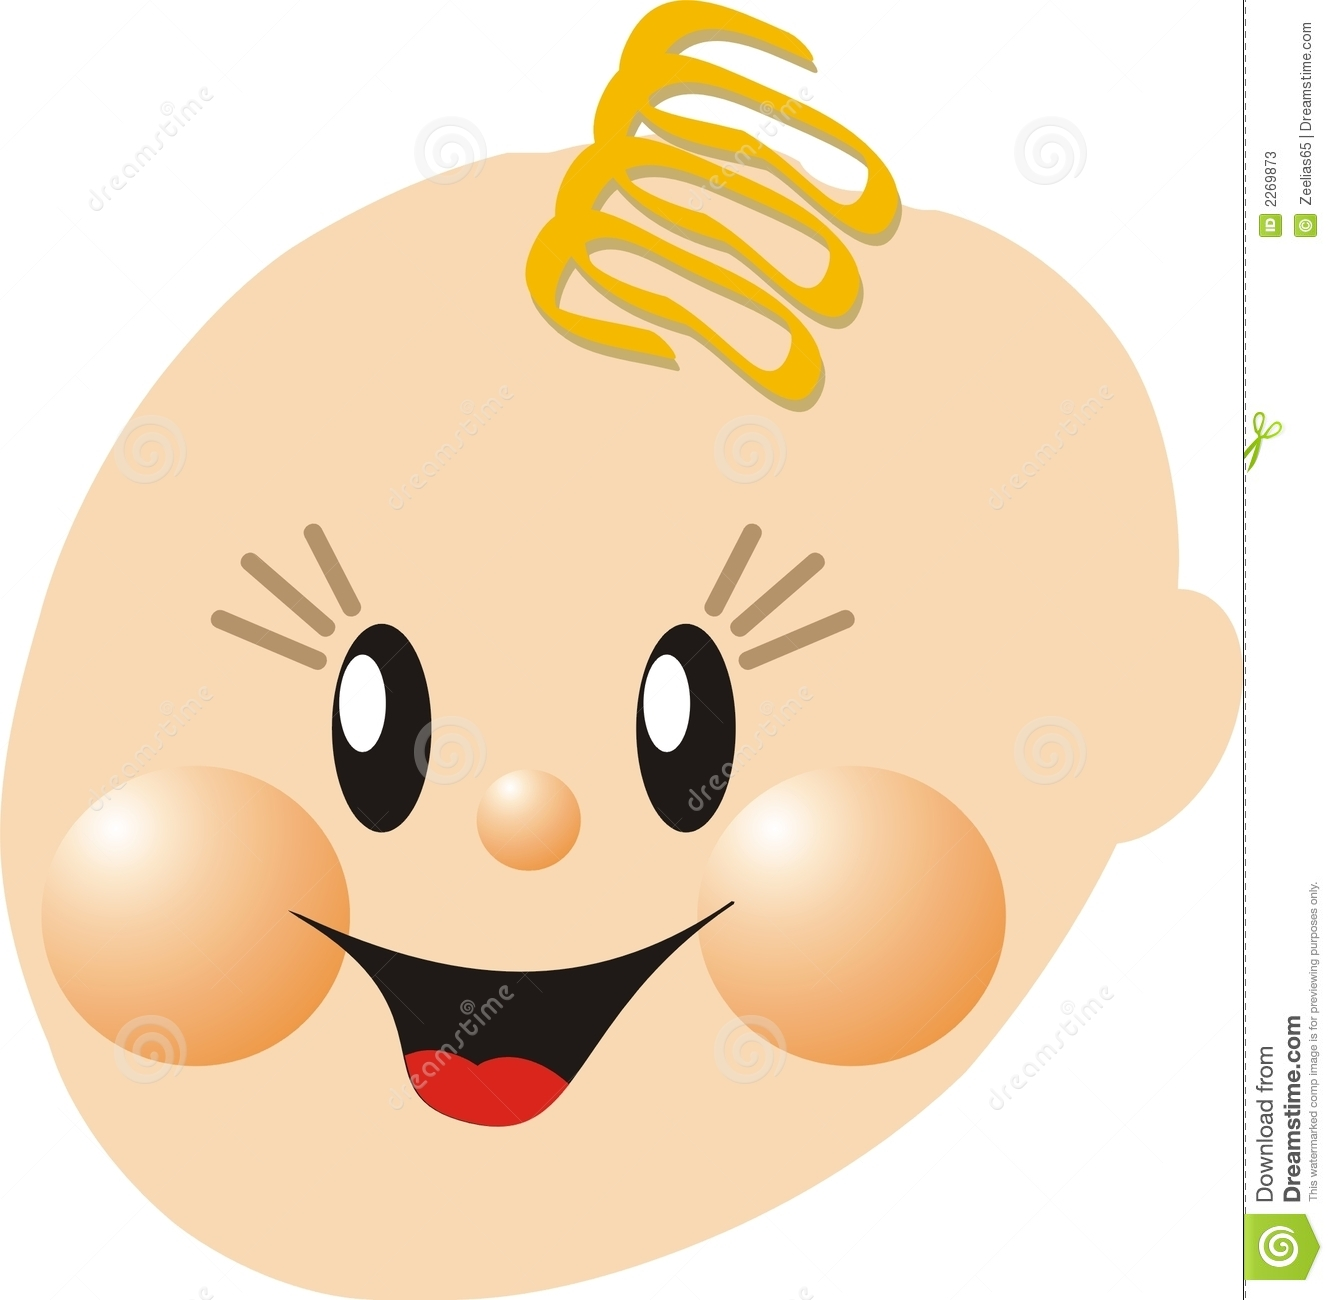 baby cartoon face stock illustrations 26 329 baby cartoon face rh dreamstime com cartoon baby faces with pacifier cartoon baby face drawing